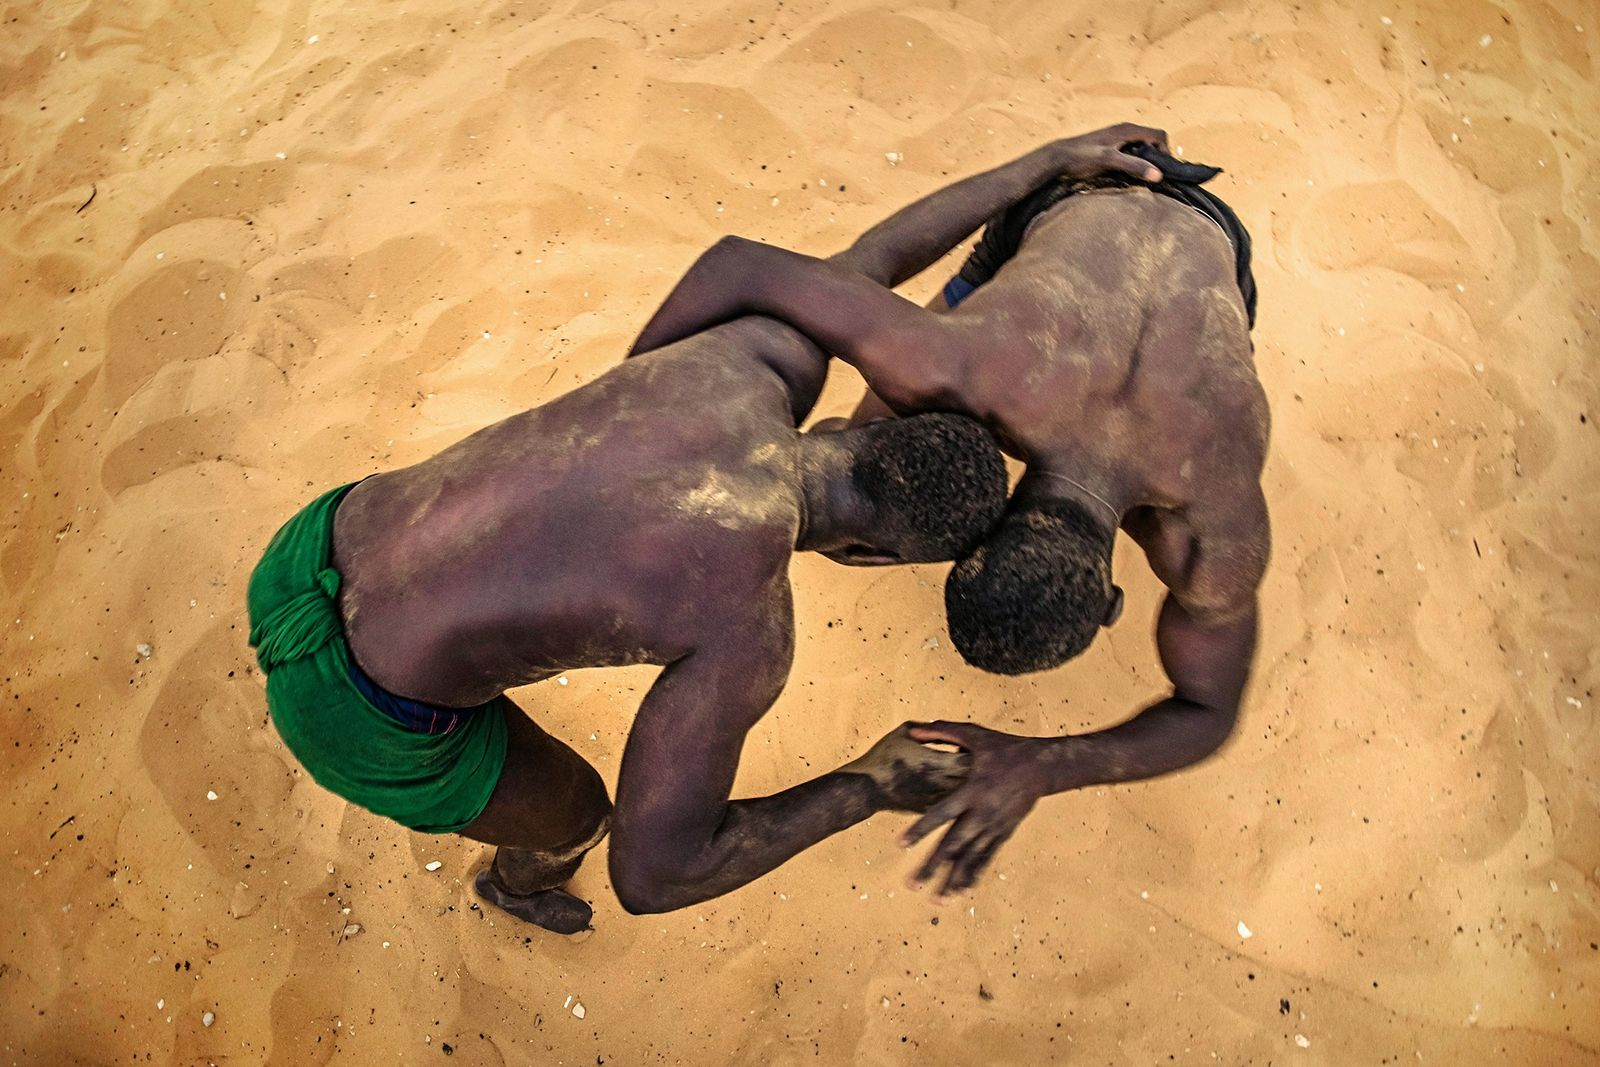 Wrestlers train at a school in Dakar, each trying to unbalance their opponent.